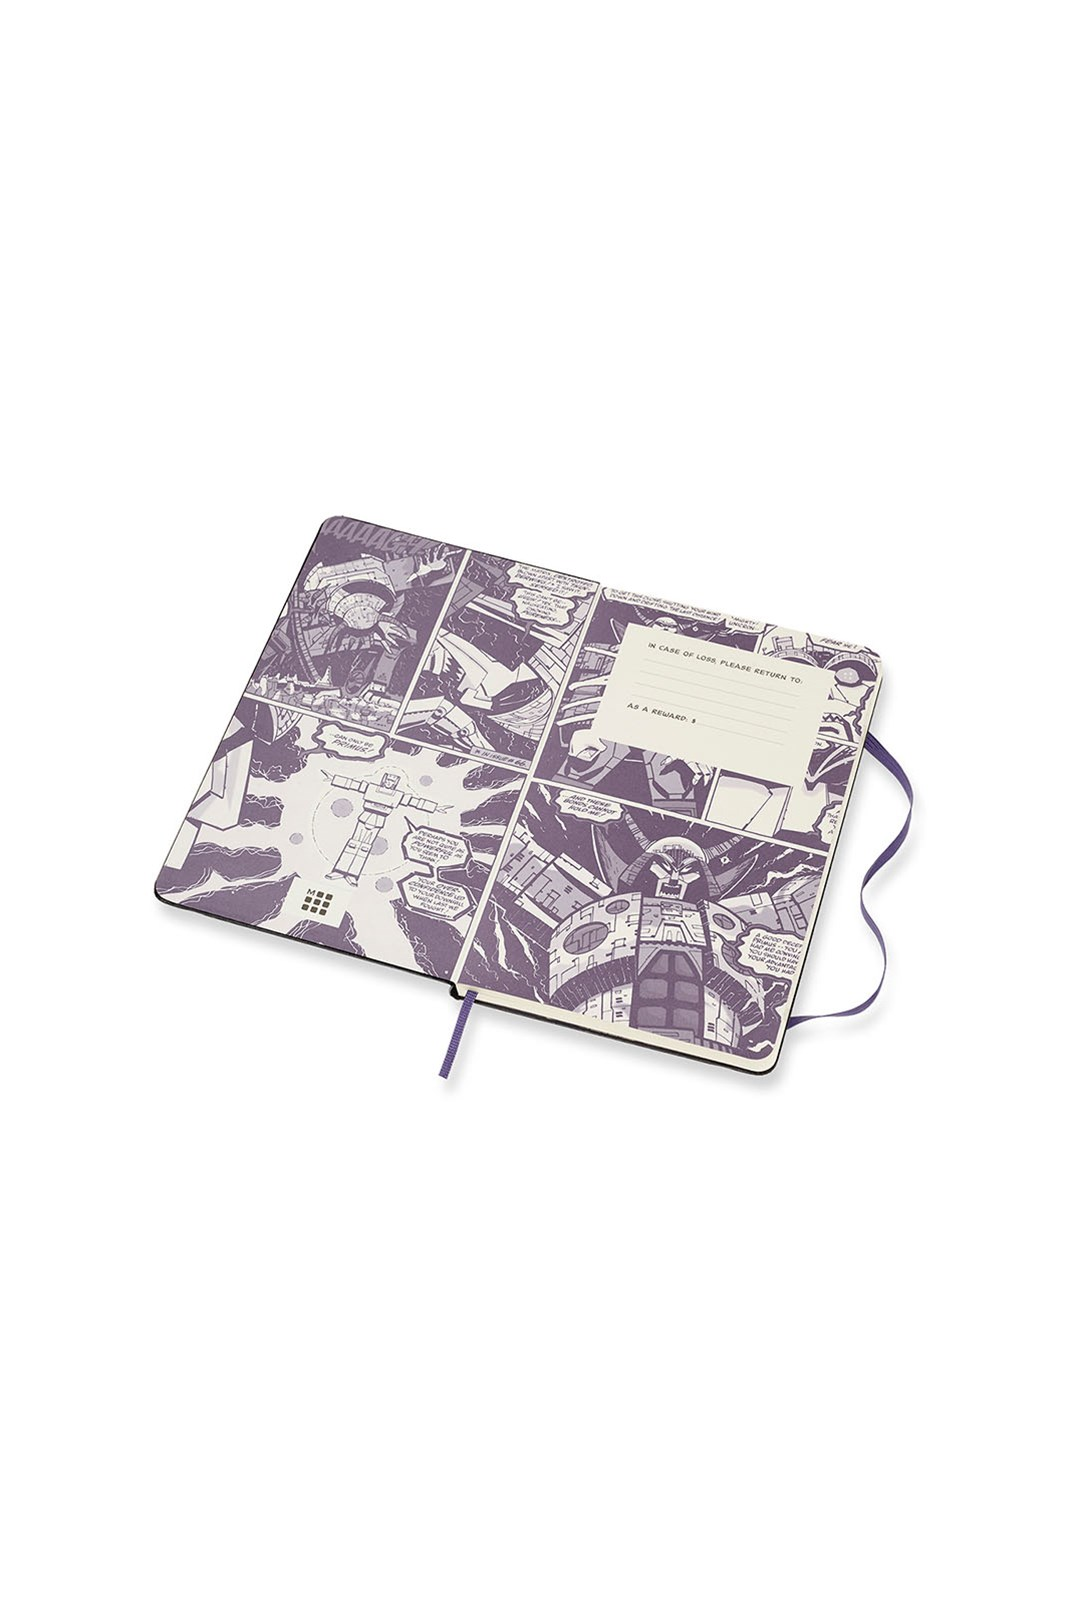 Moleskine - Limited Edition - Transformers Notebook - Ruled - Large - Megatron